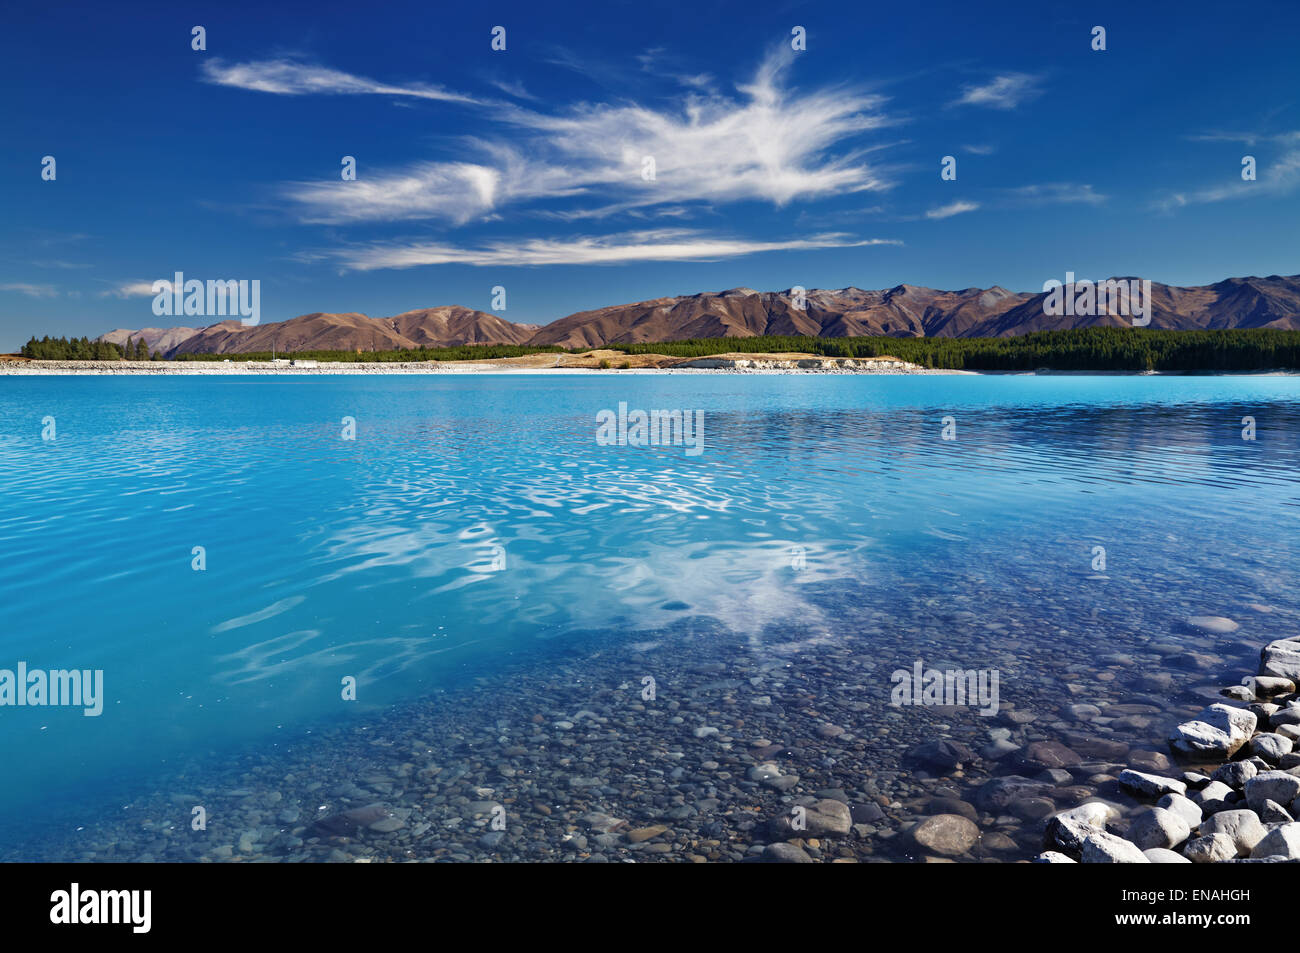 Lake Pukaki, South Island, New Zealand - Stock Image